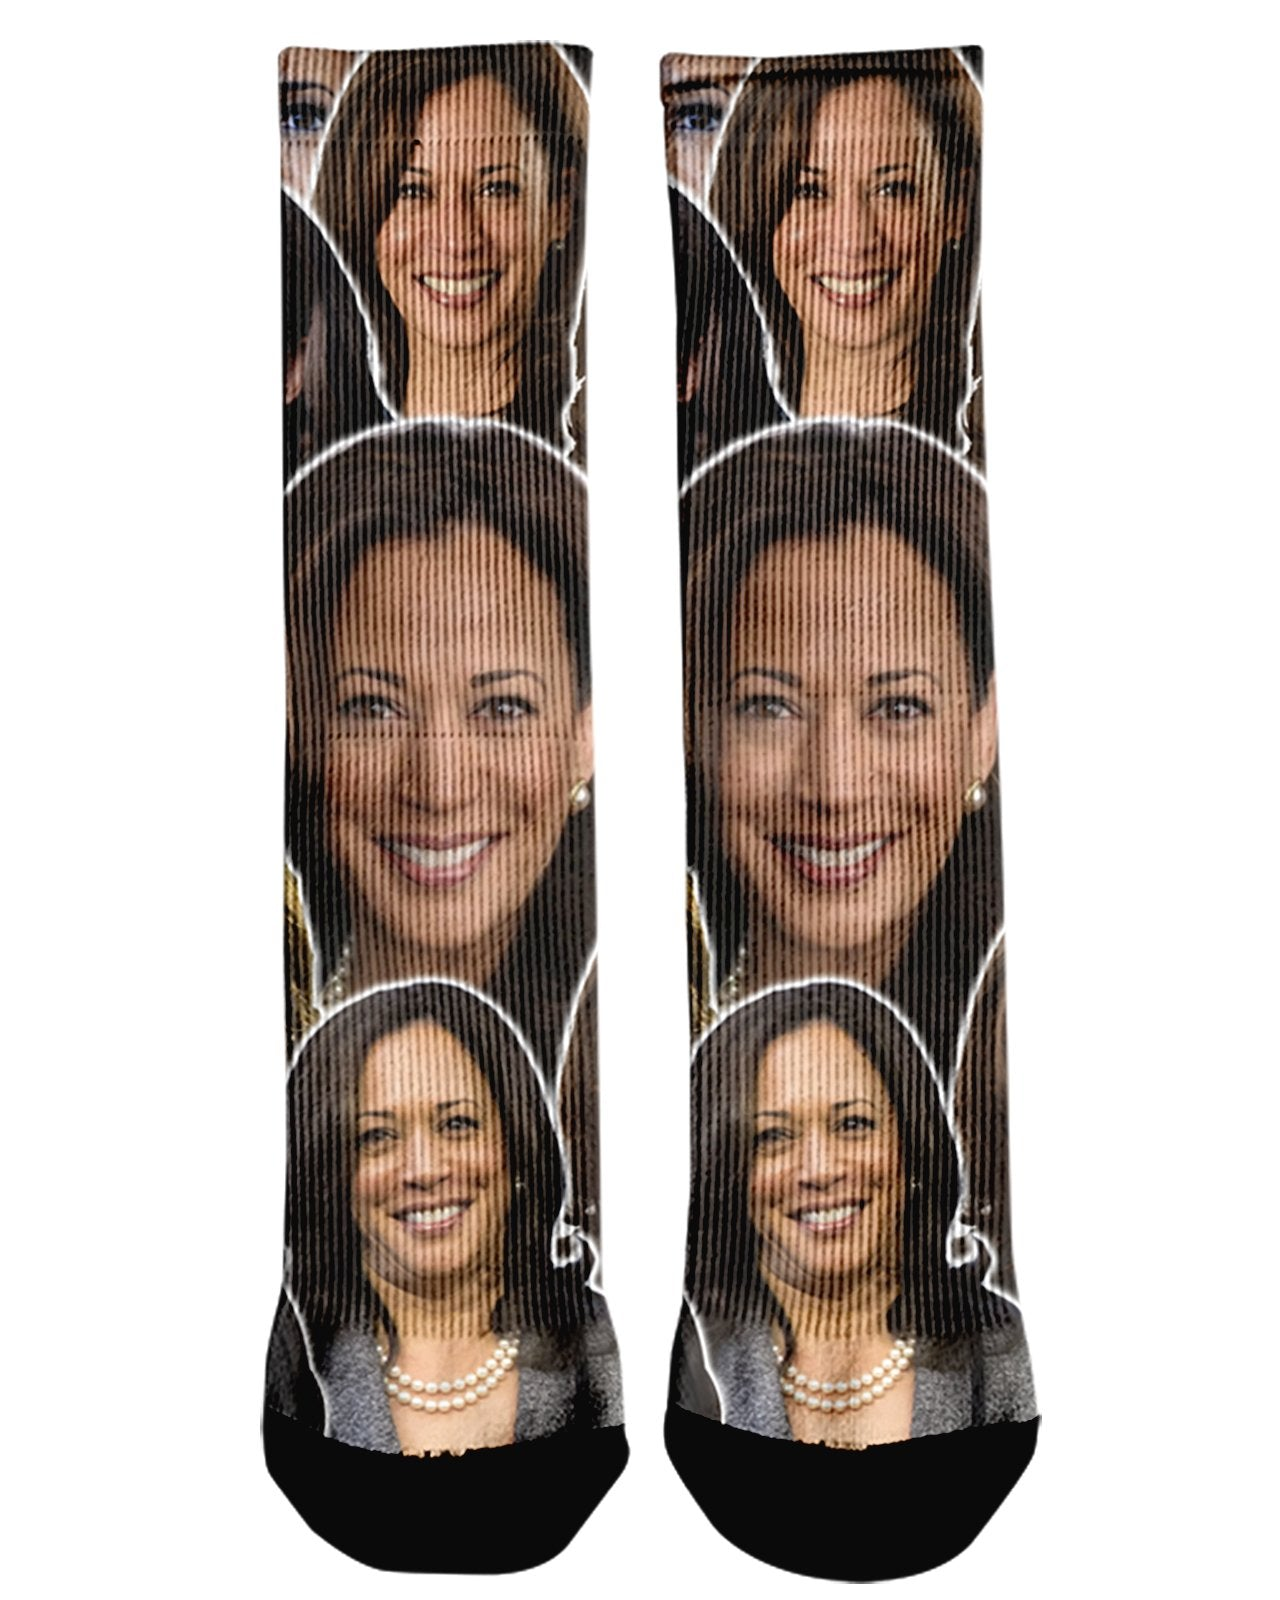 Kamala Harris Crew Socks